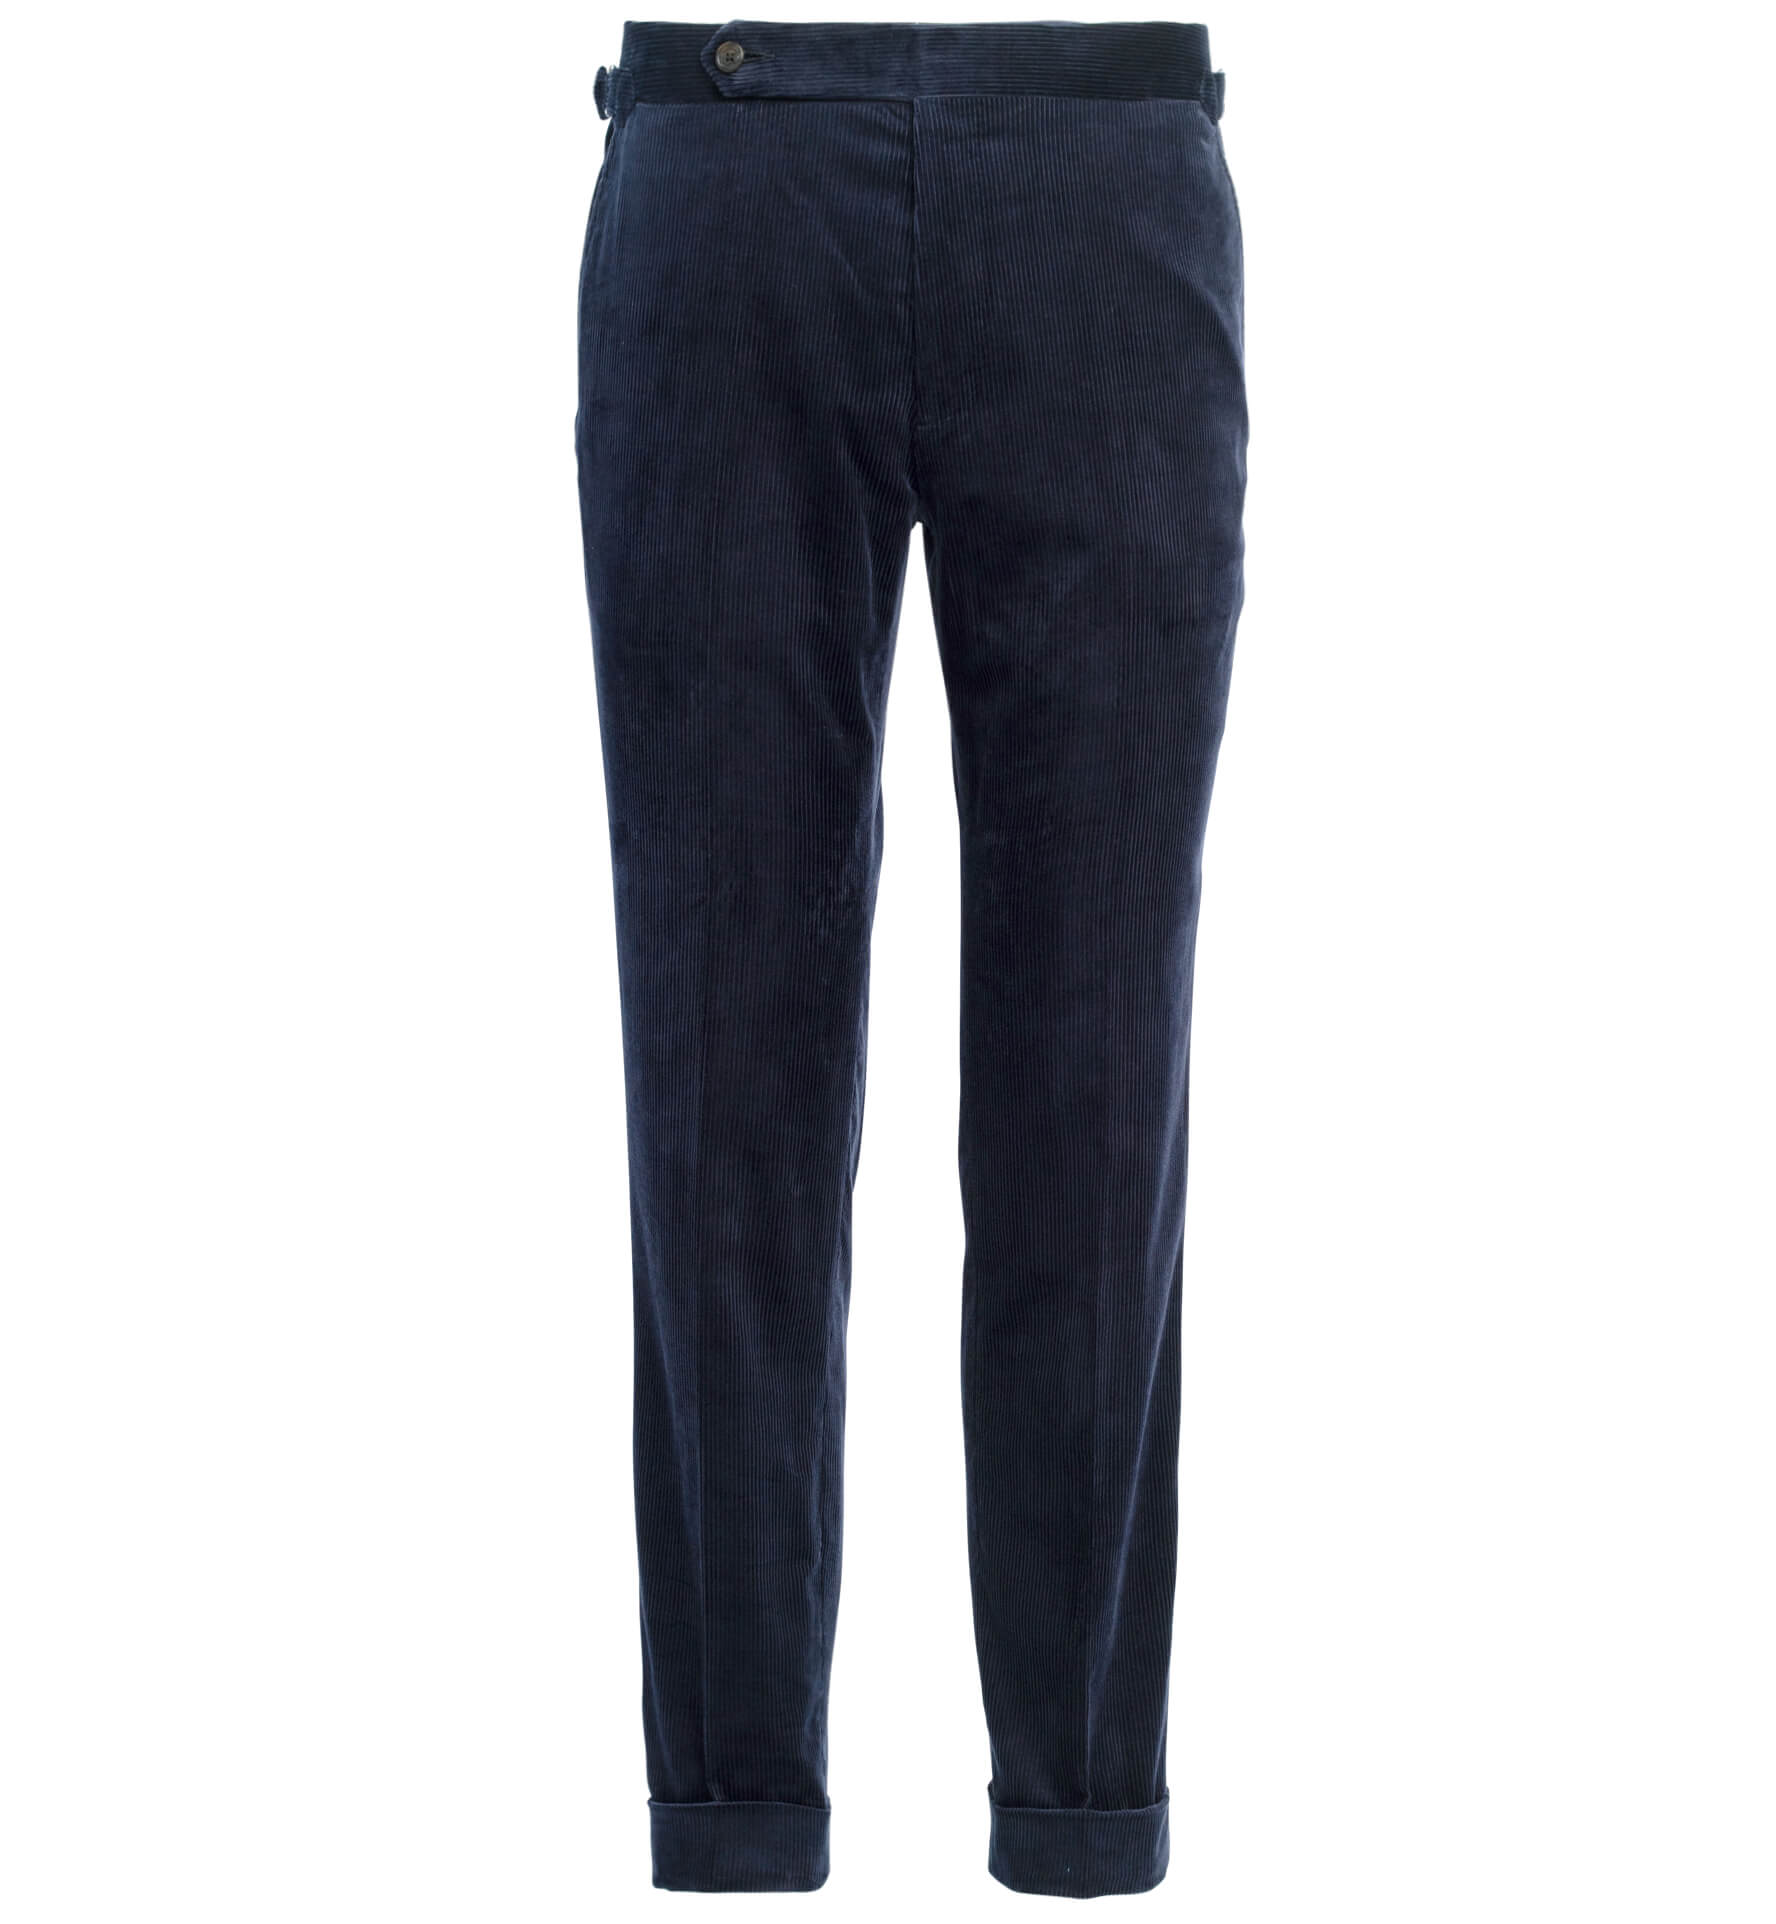 Zoom Image of Allen Navy Stretch Corduroy Trouser